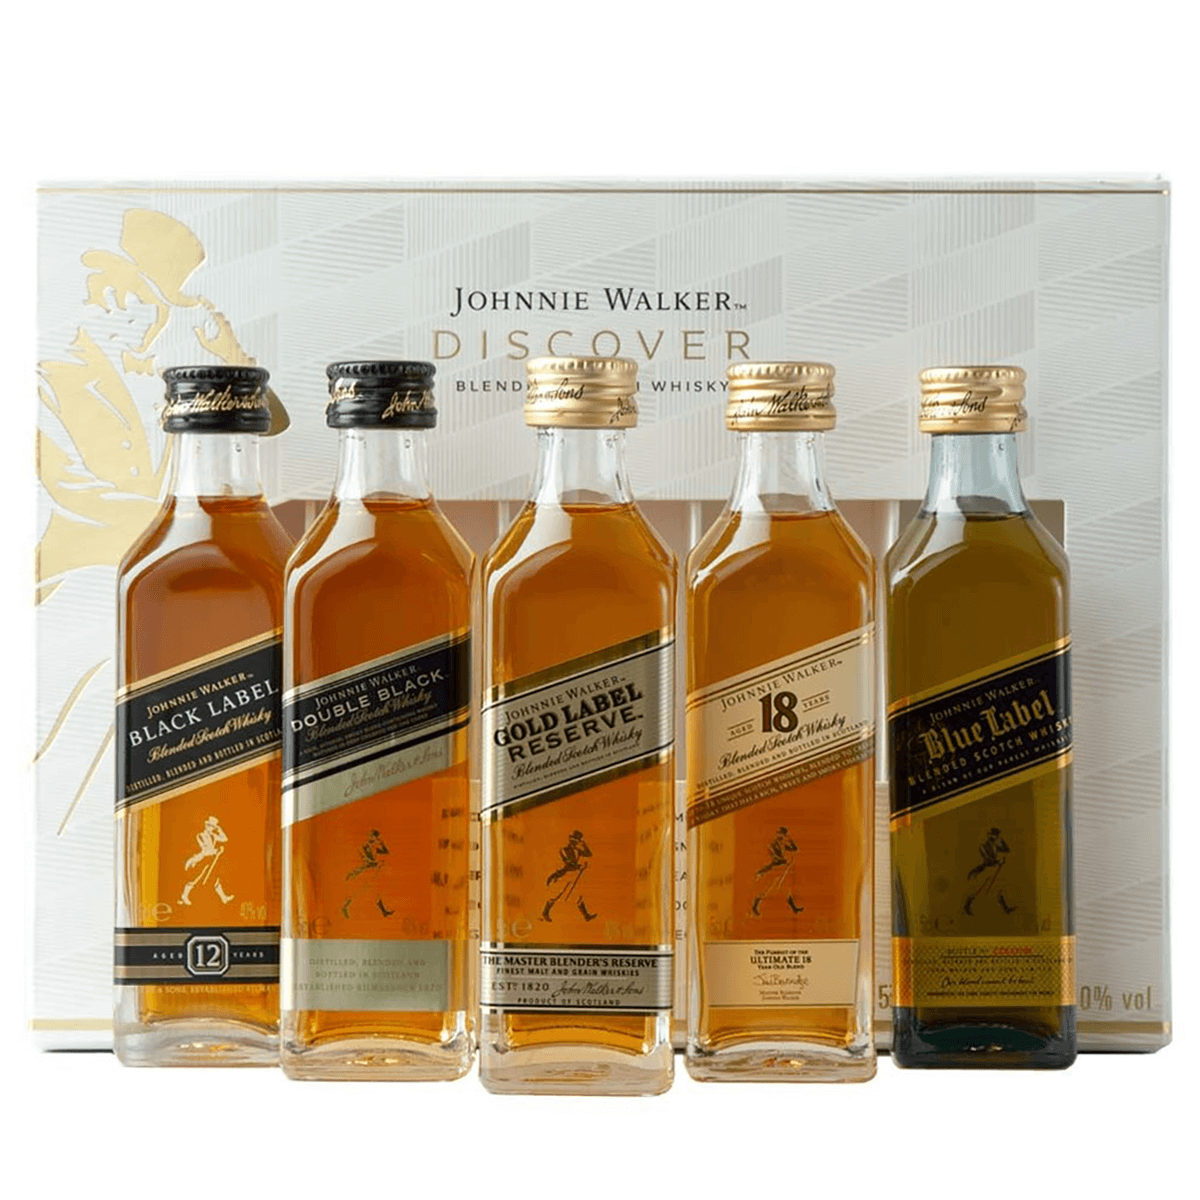 Johnnie Walker Collection 5 pack (50ml